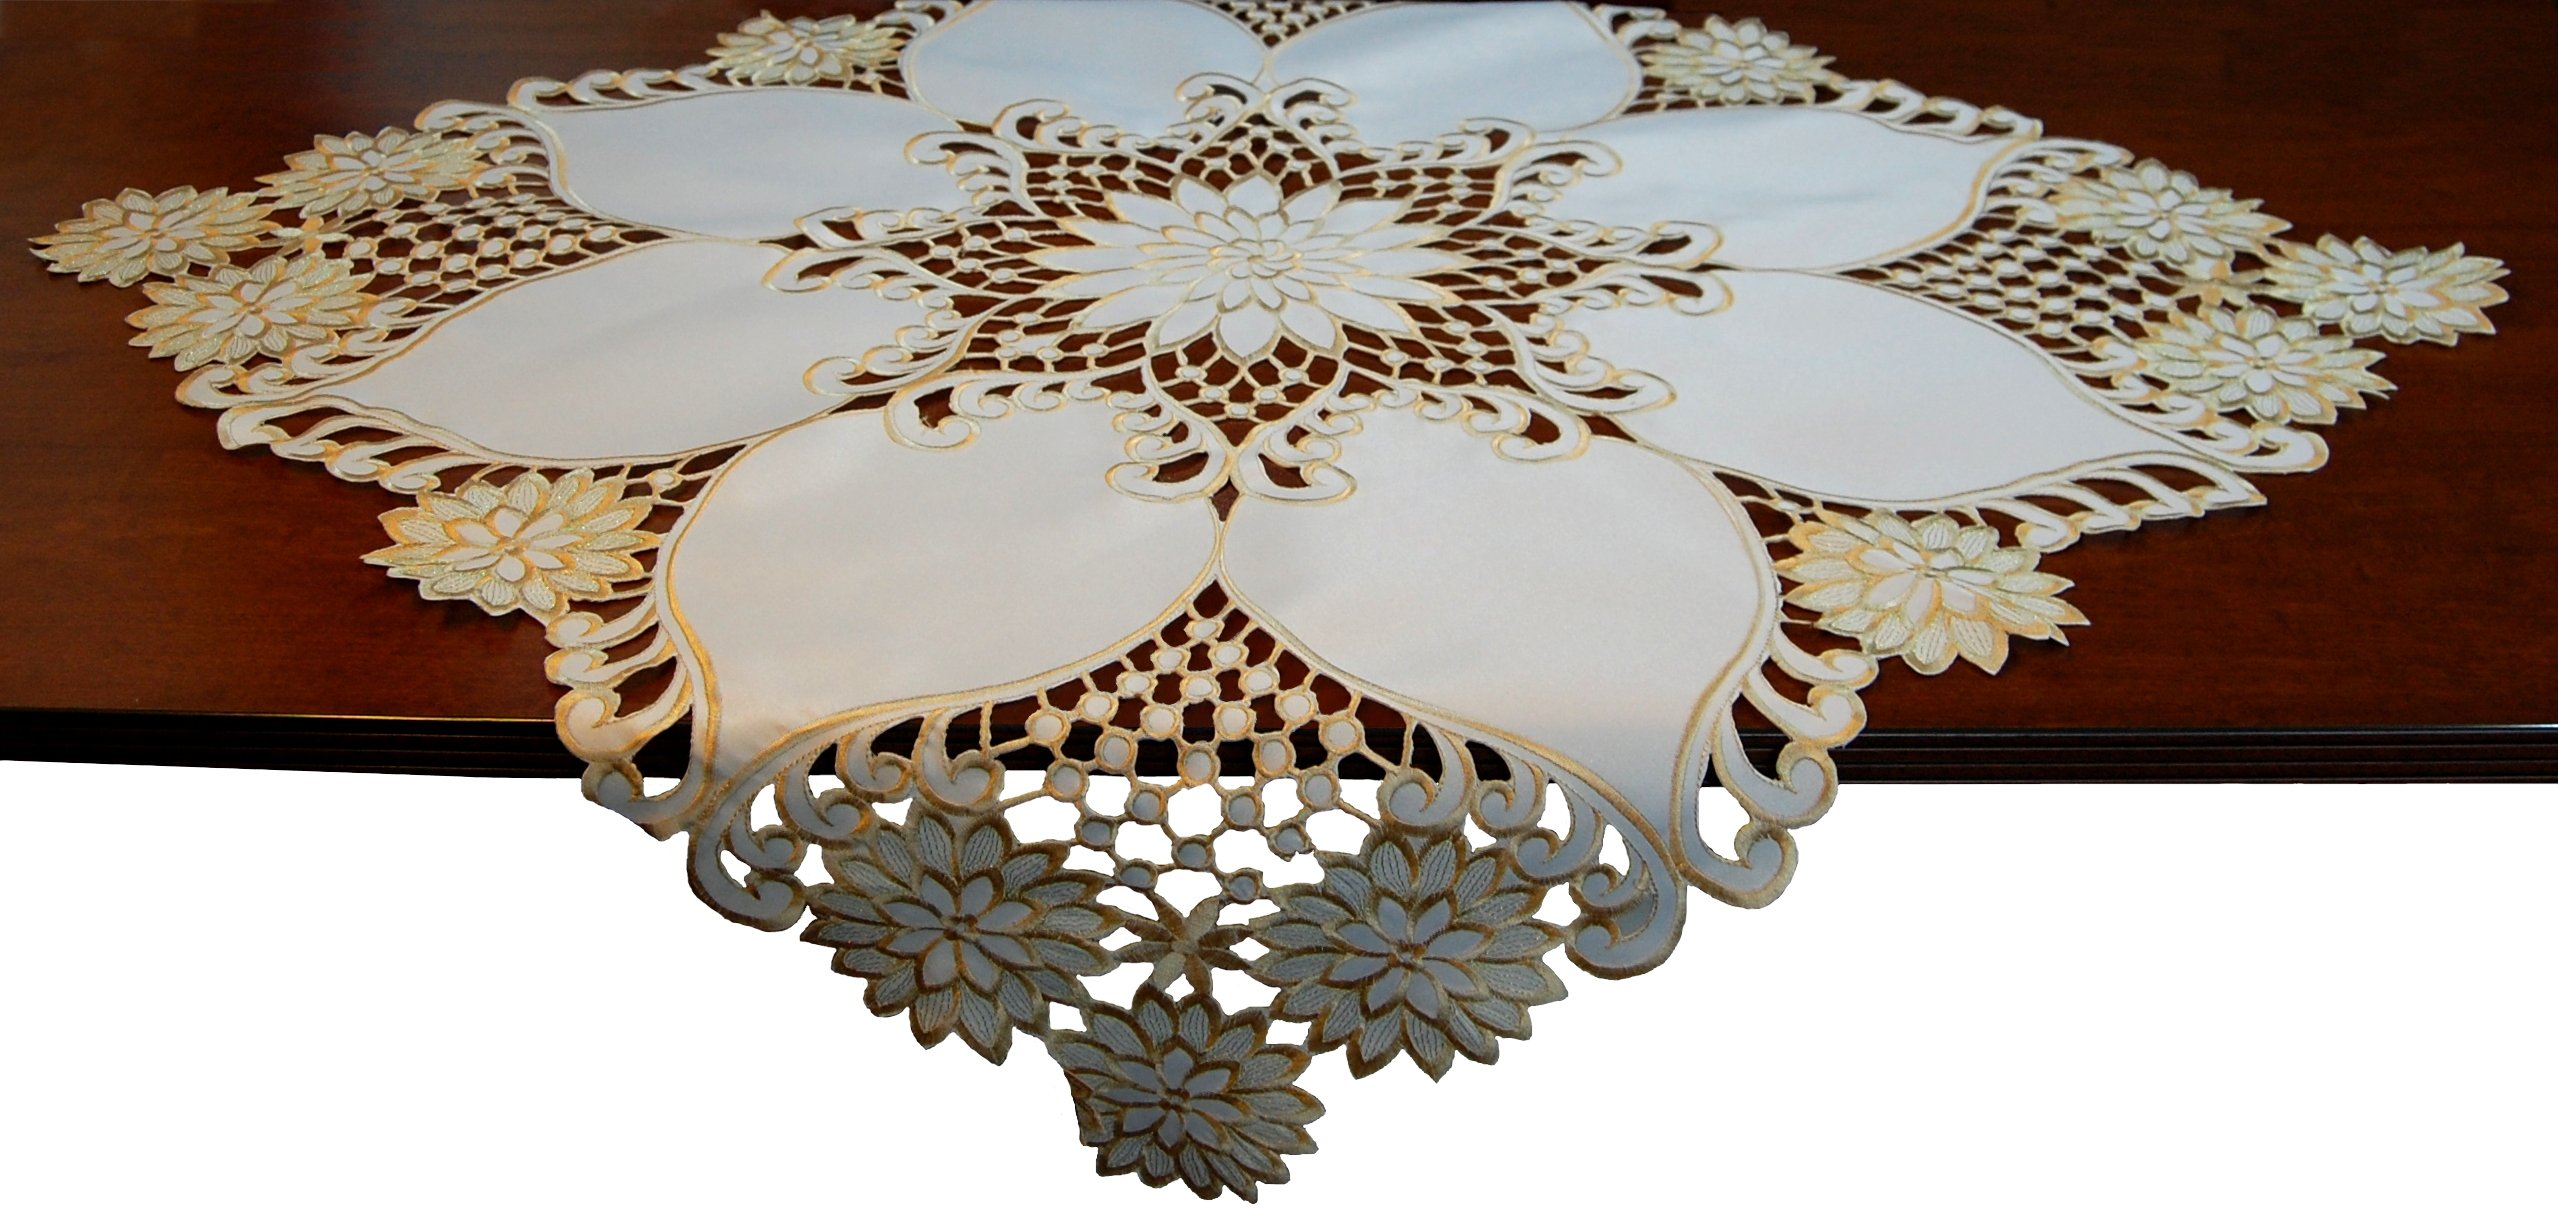 EcoSol Designs Embroidered Table Topper Centerpiece (33''x33'', White Lily)